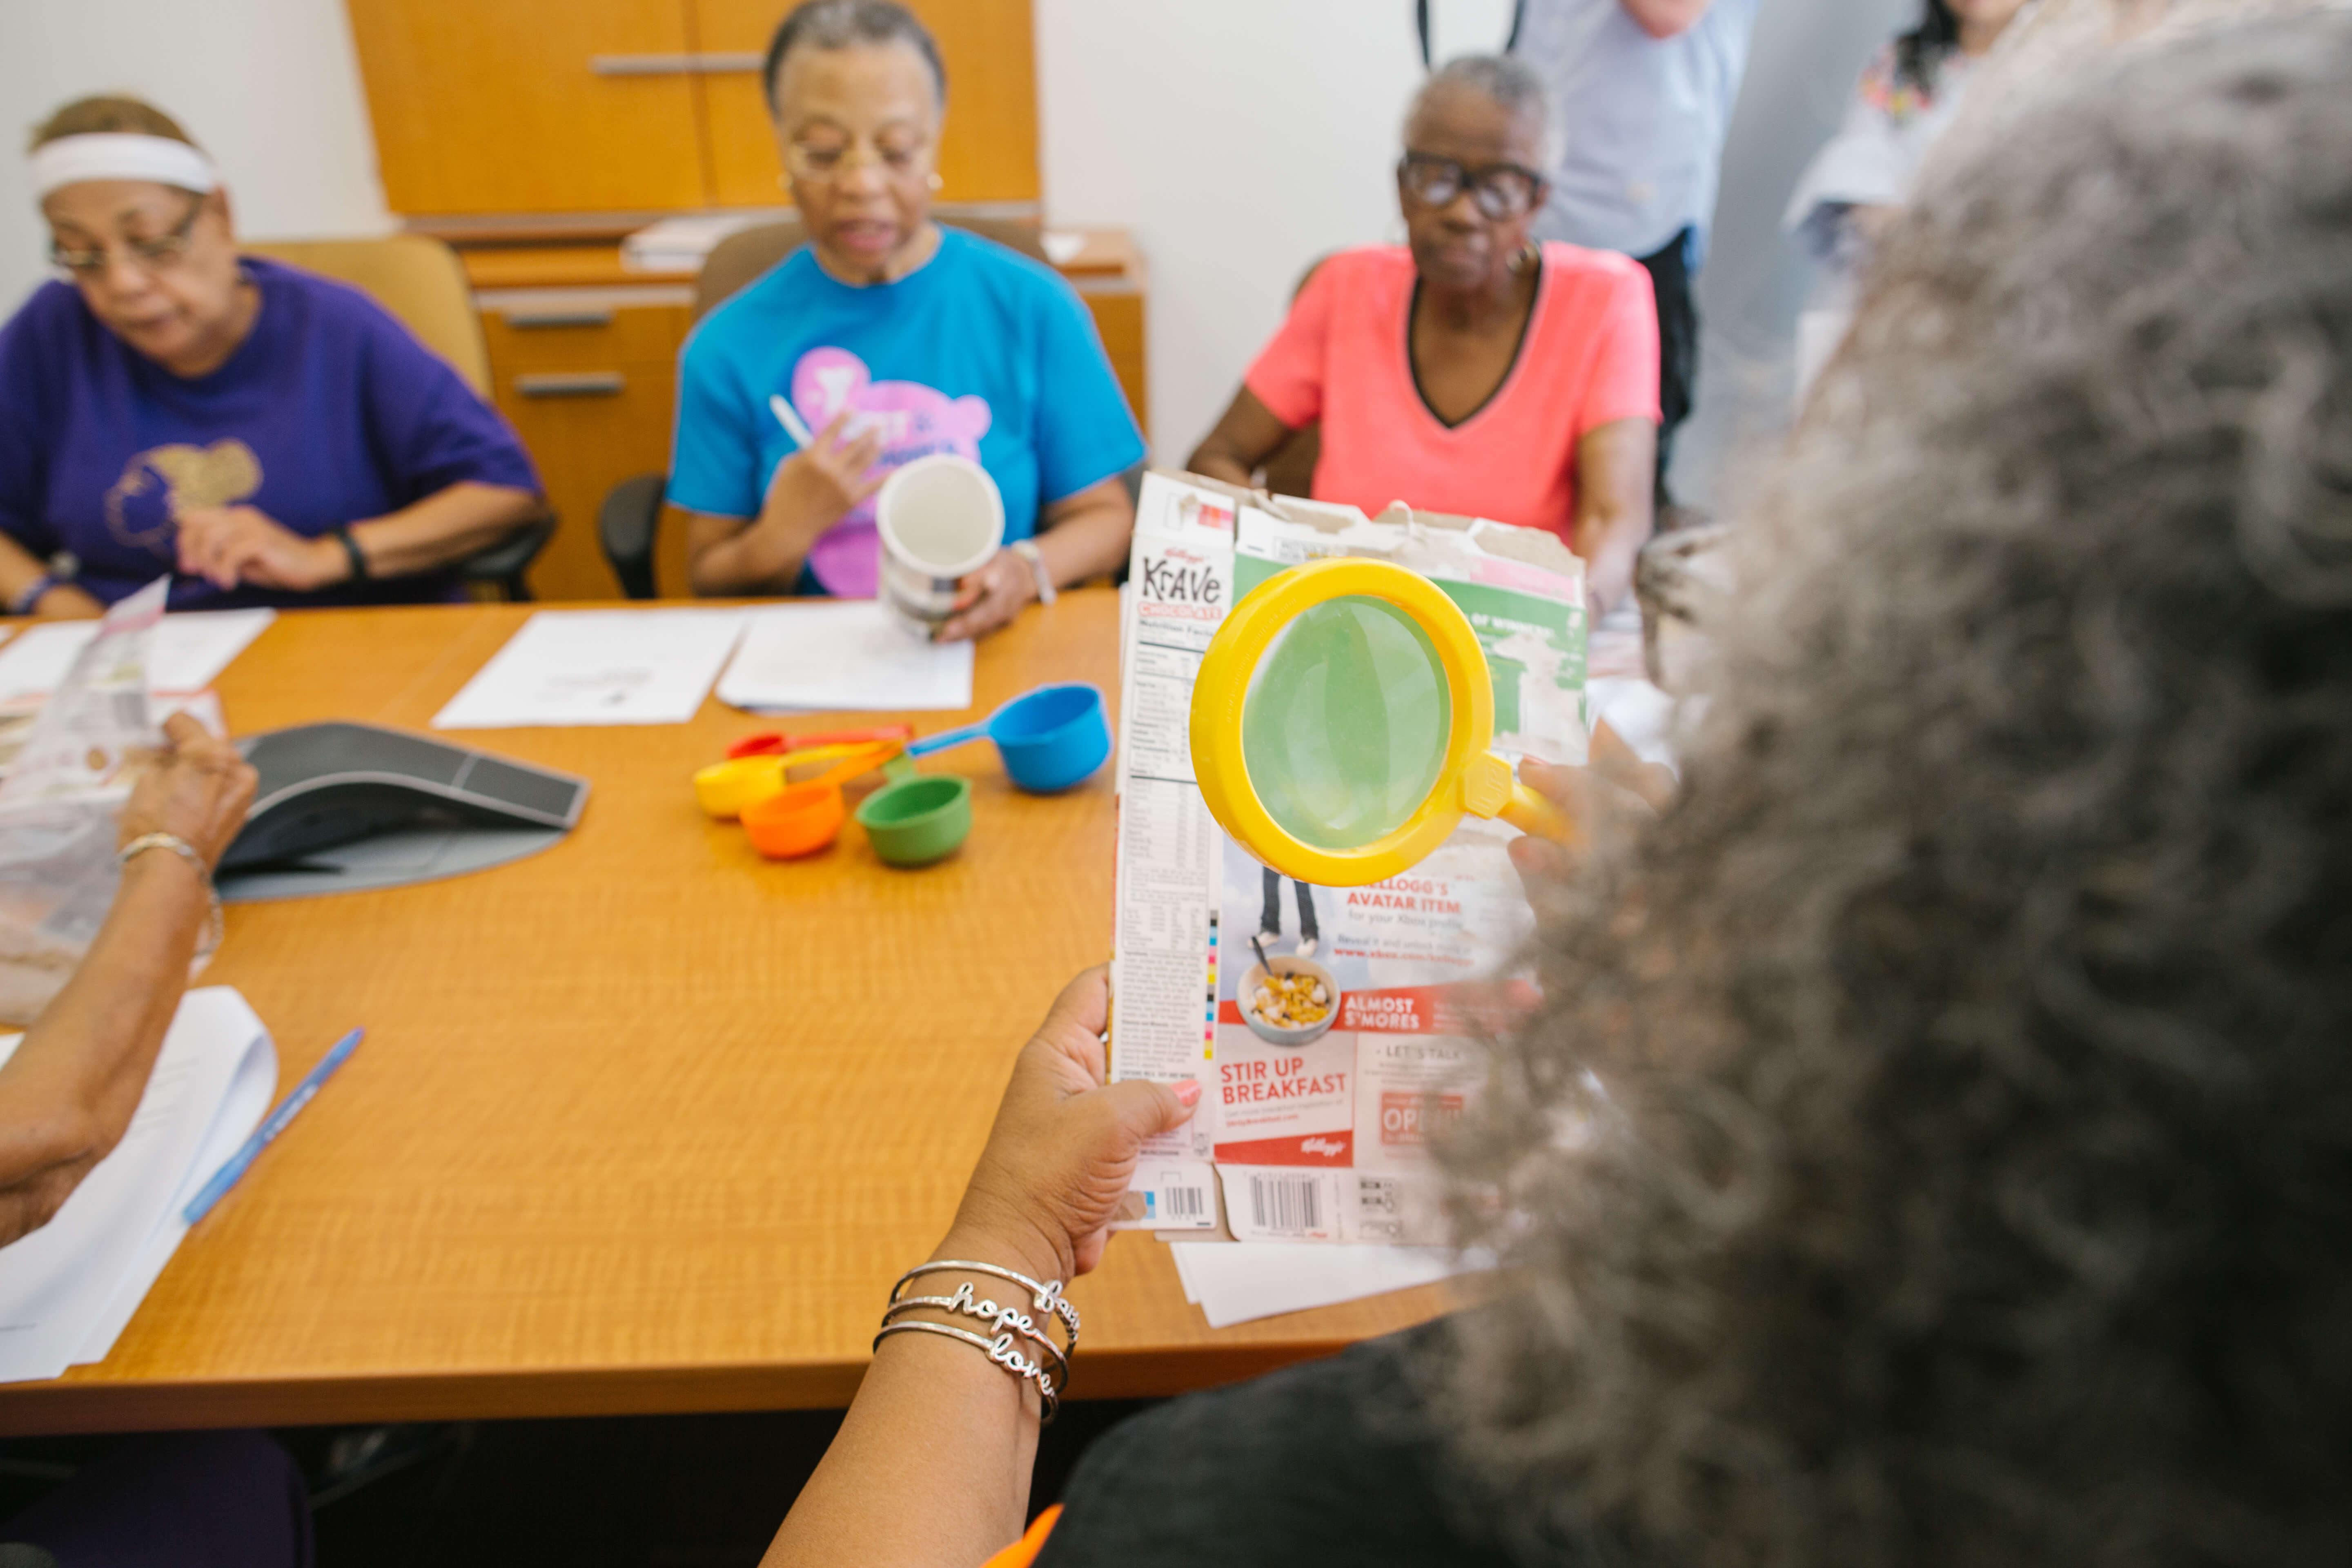 Margaret Jefferson learns to properly read food labels in a Project TOUCH class. (Photo courtesy of the University of Houston)